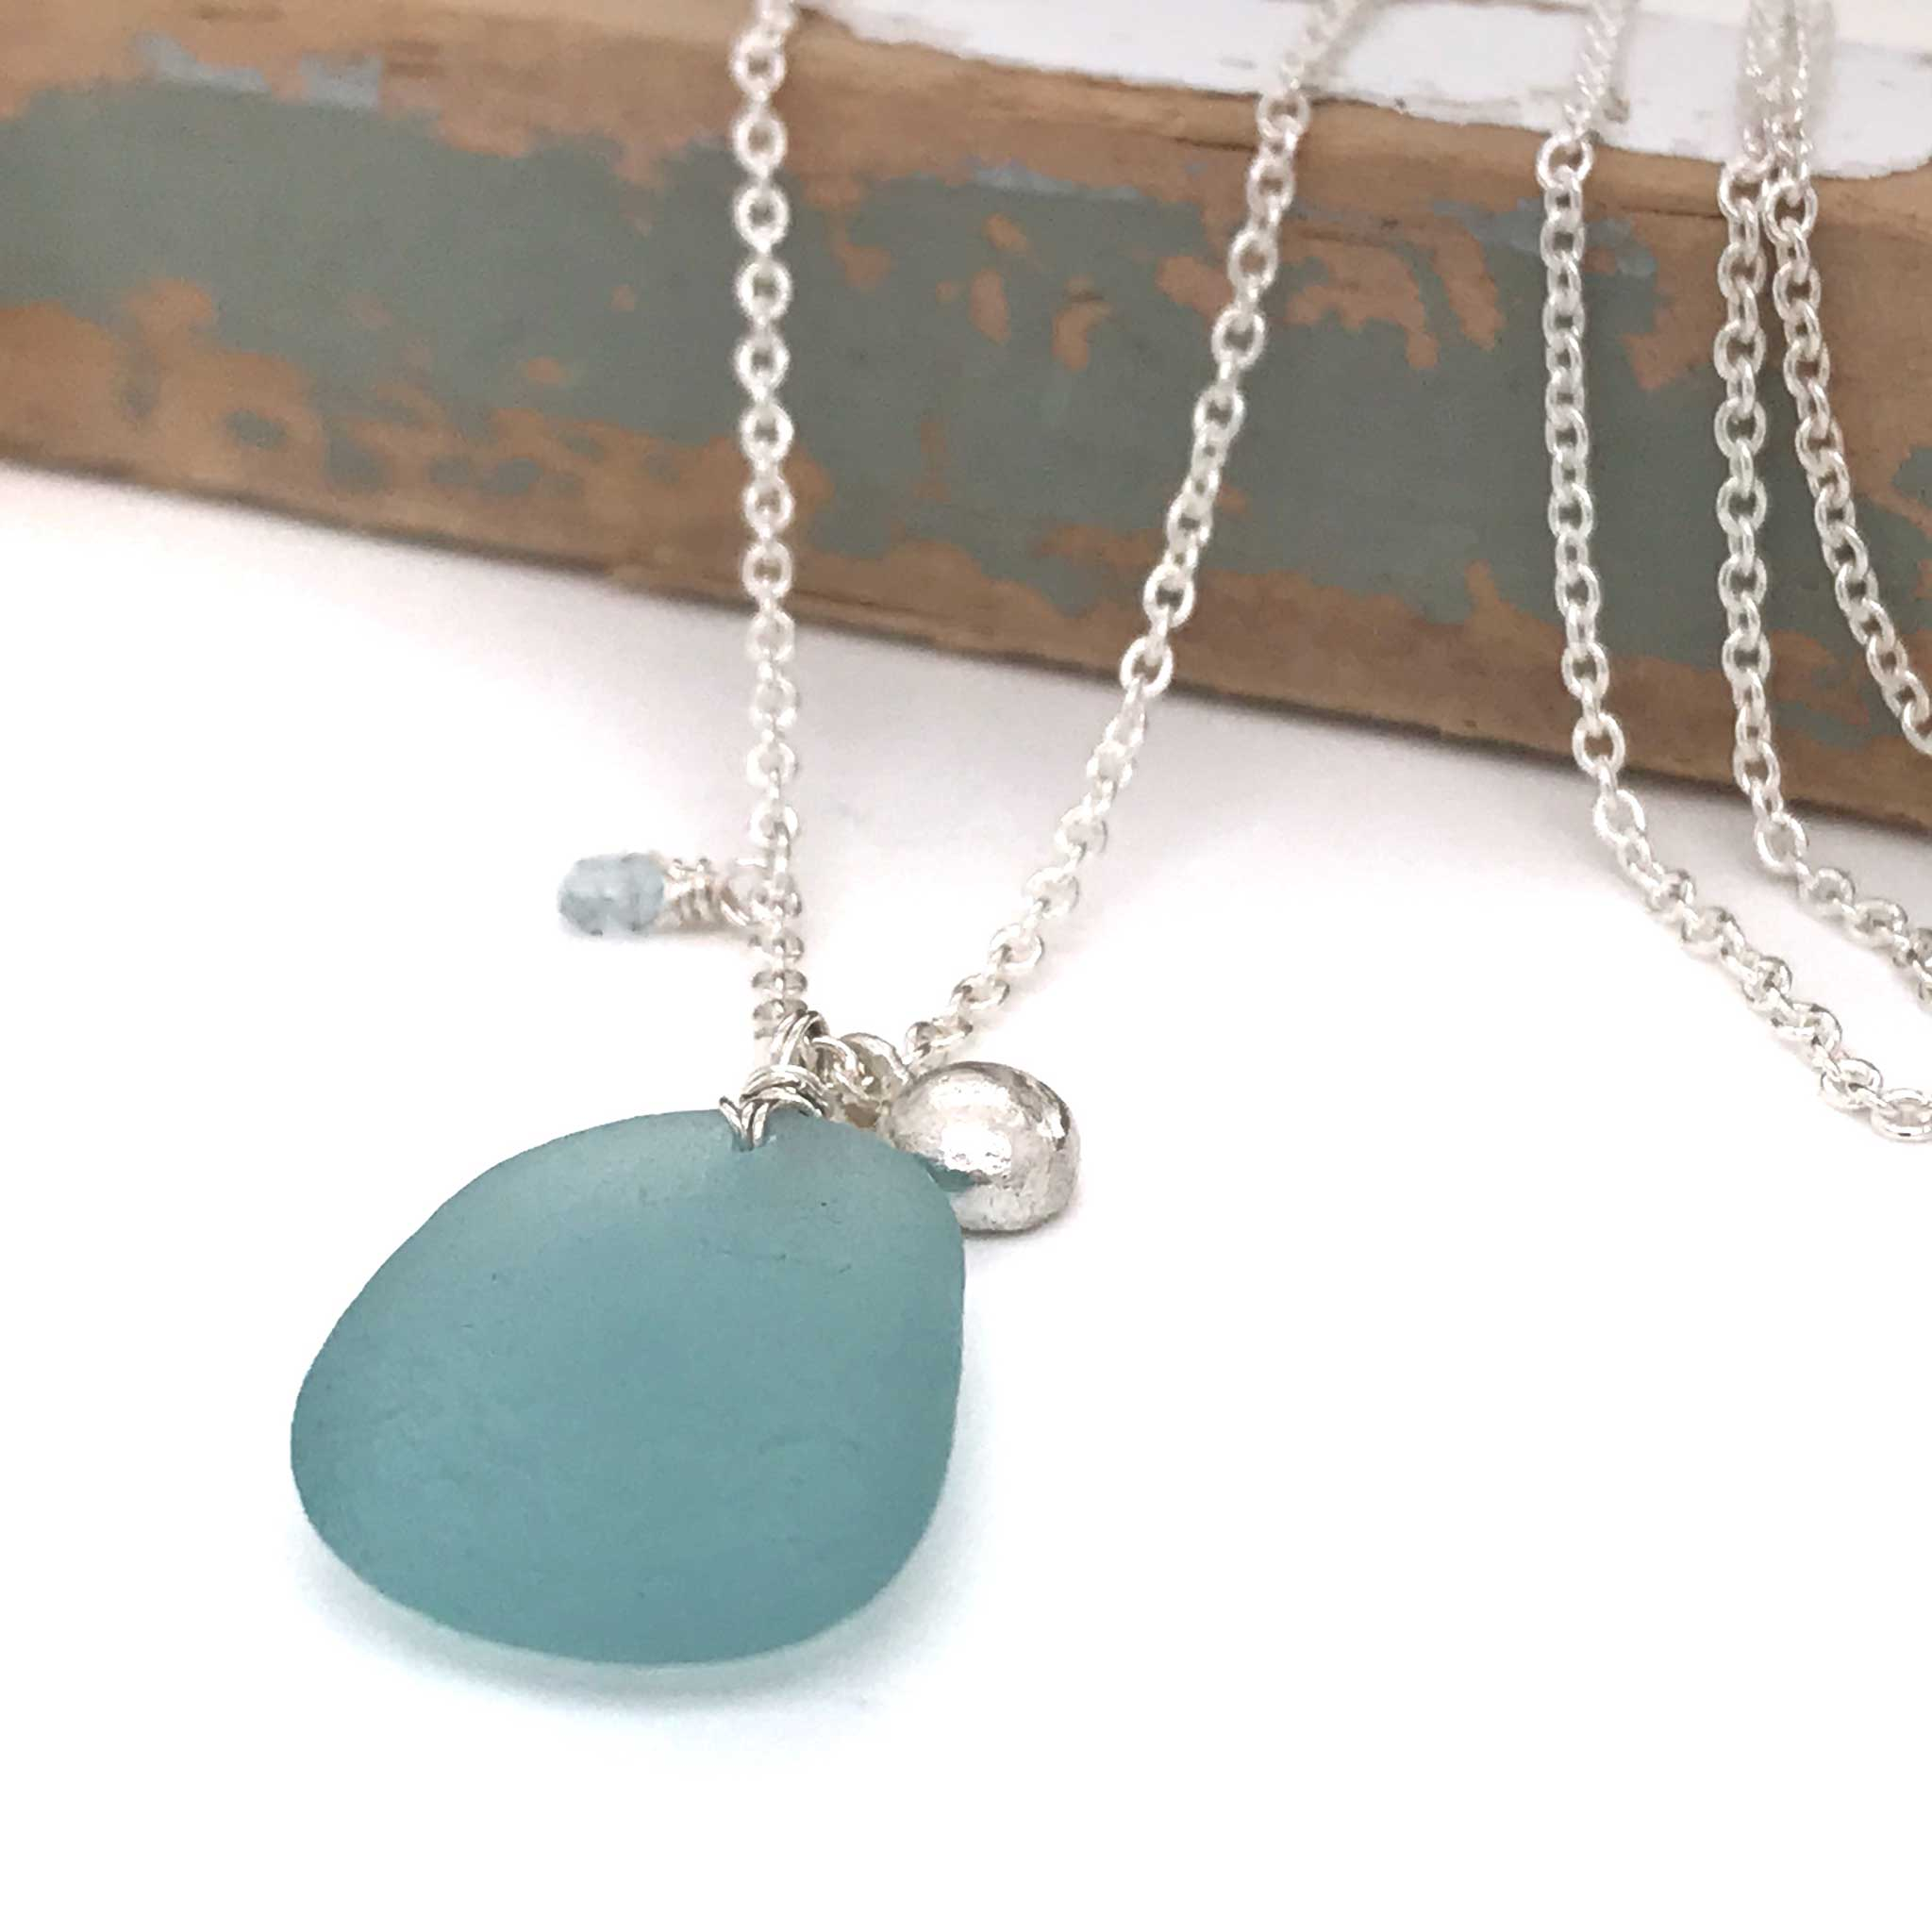 aqua beach glass necklace with solid silver pebble charm kriket broadhurst jewellery Sydney